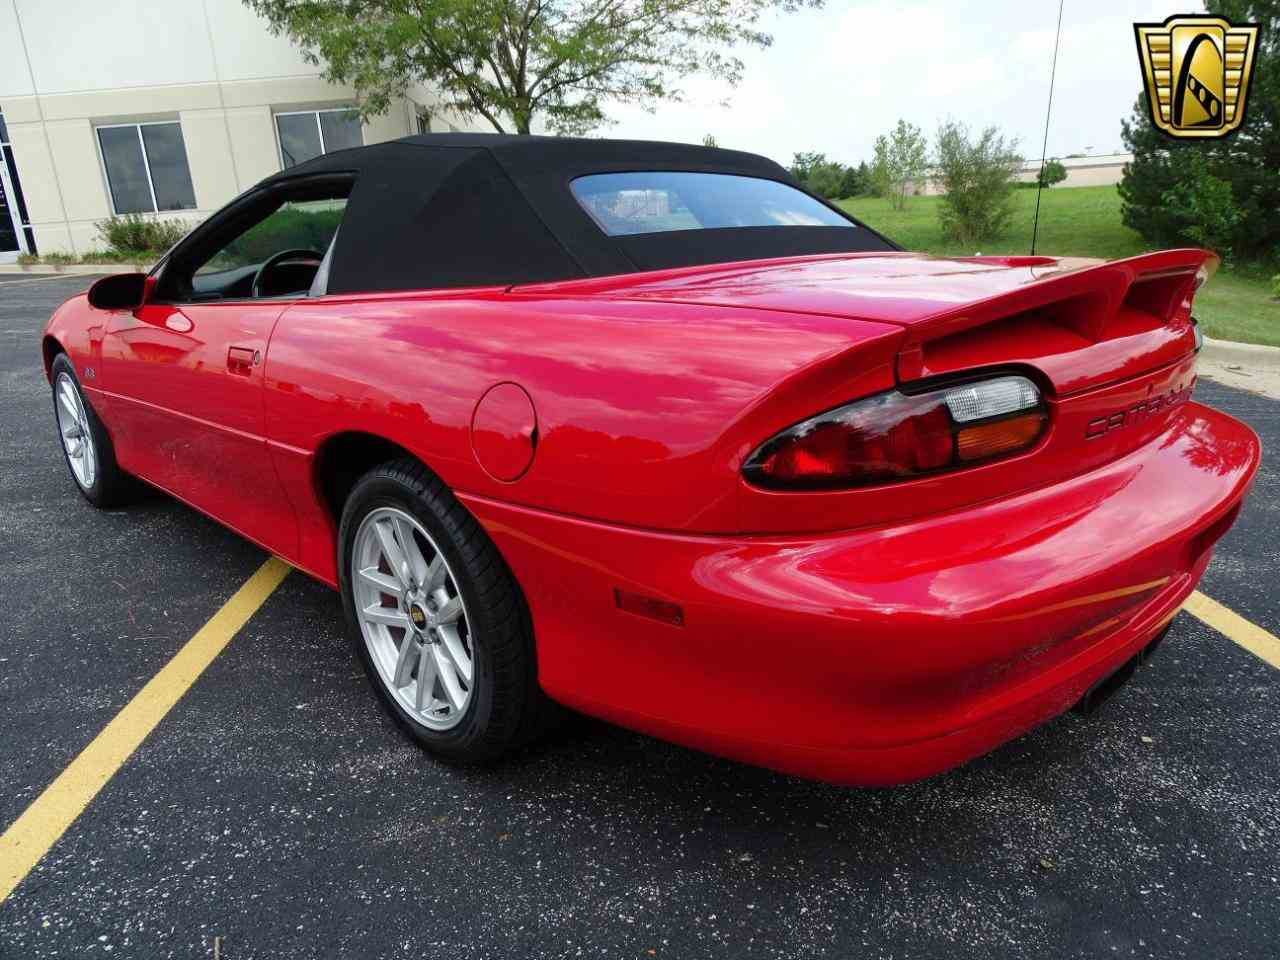 Large Picture of '02 Chevrolet Camaro located in Crete Illinois - $20,995.00 Offered by Gateway Classic Cars - Chicago - LRV9